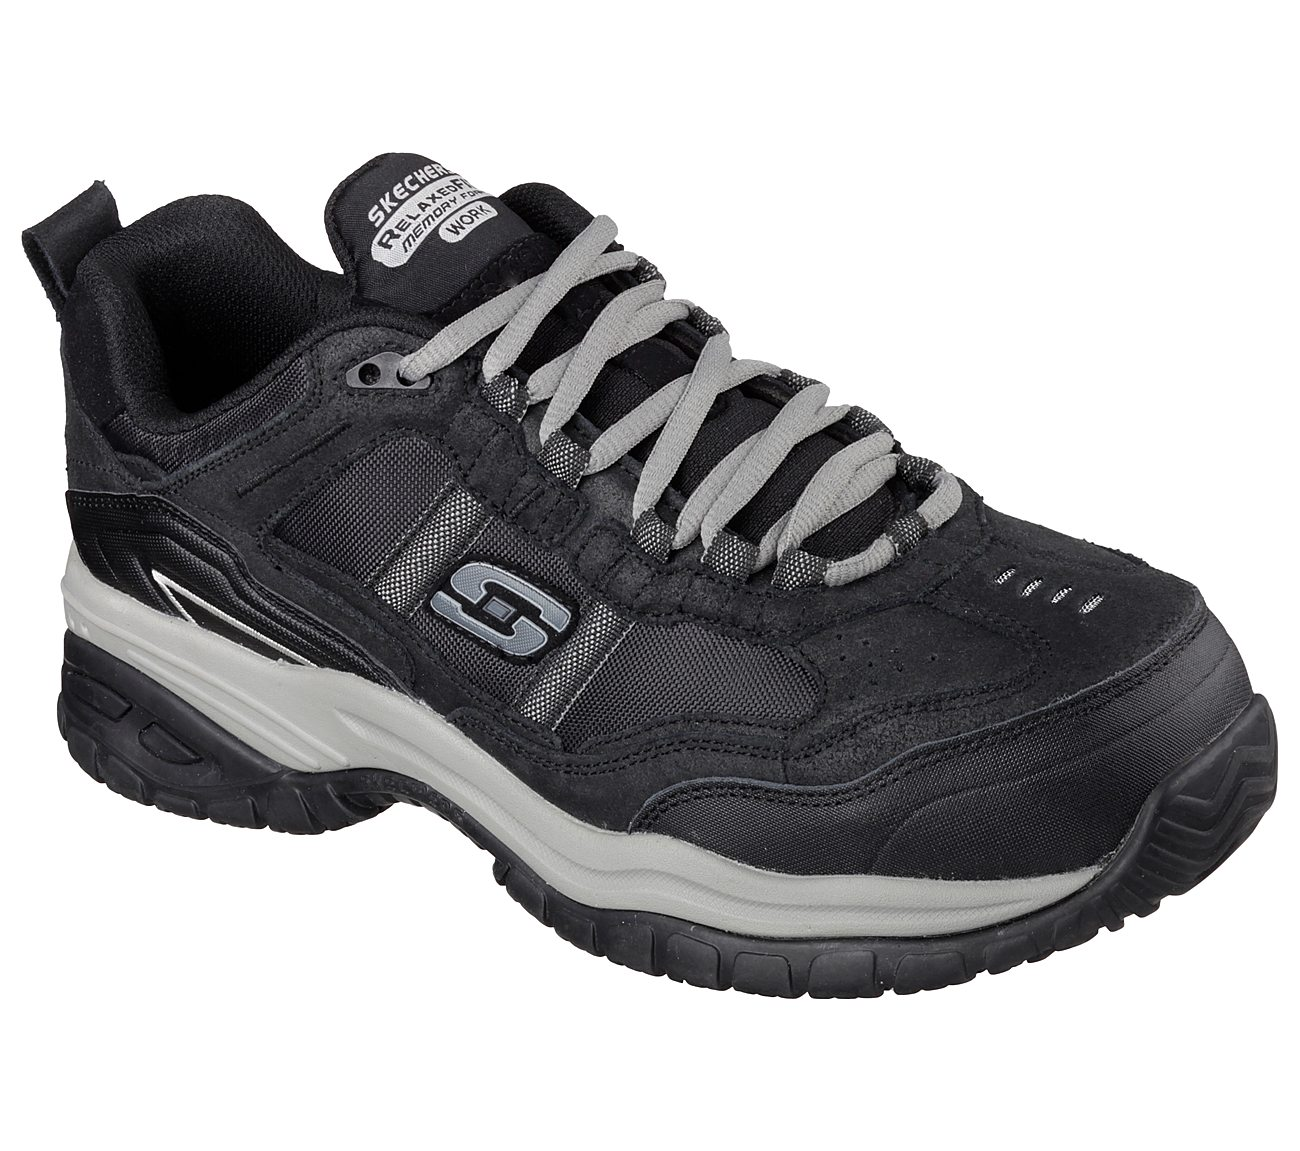 skechers shoes model